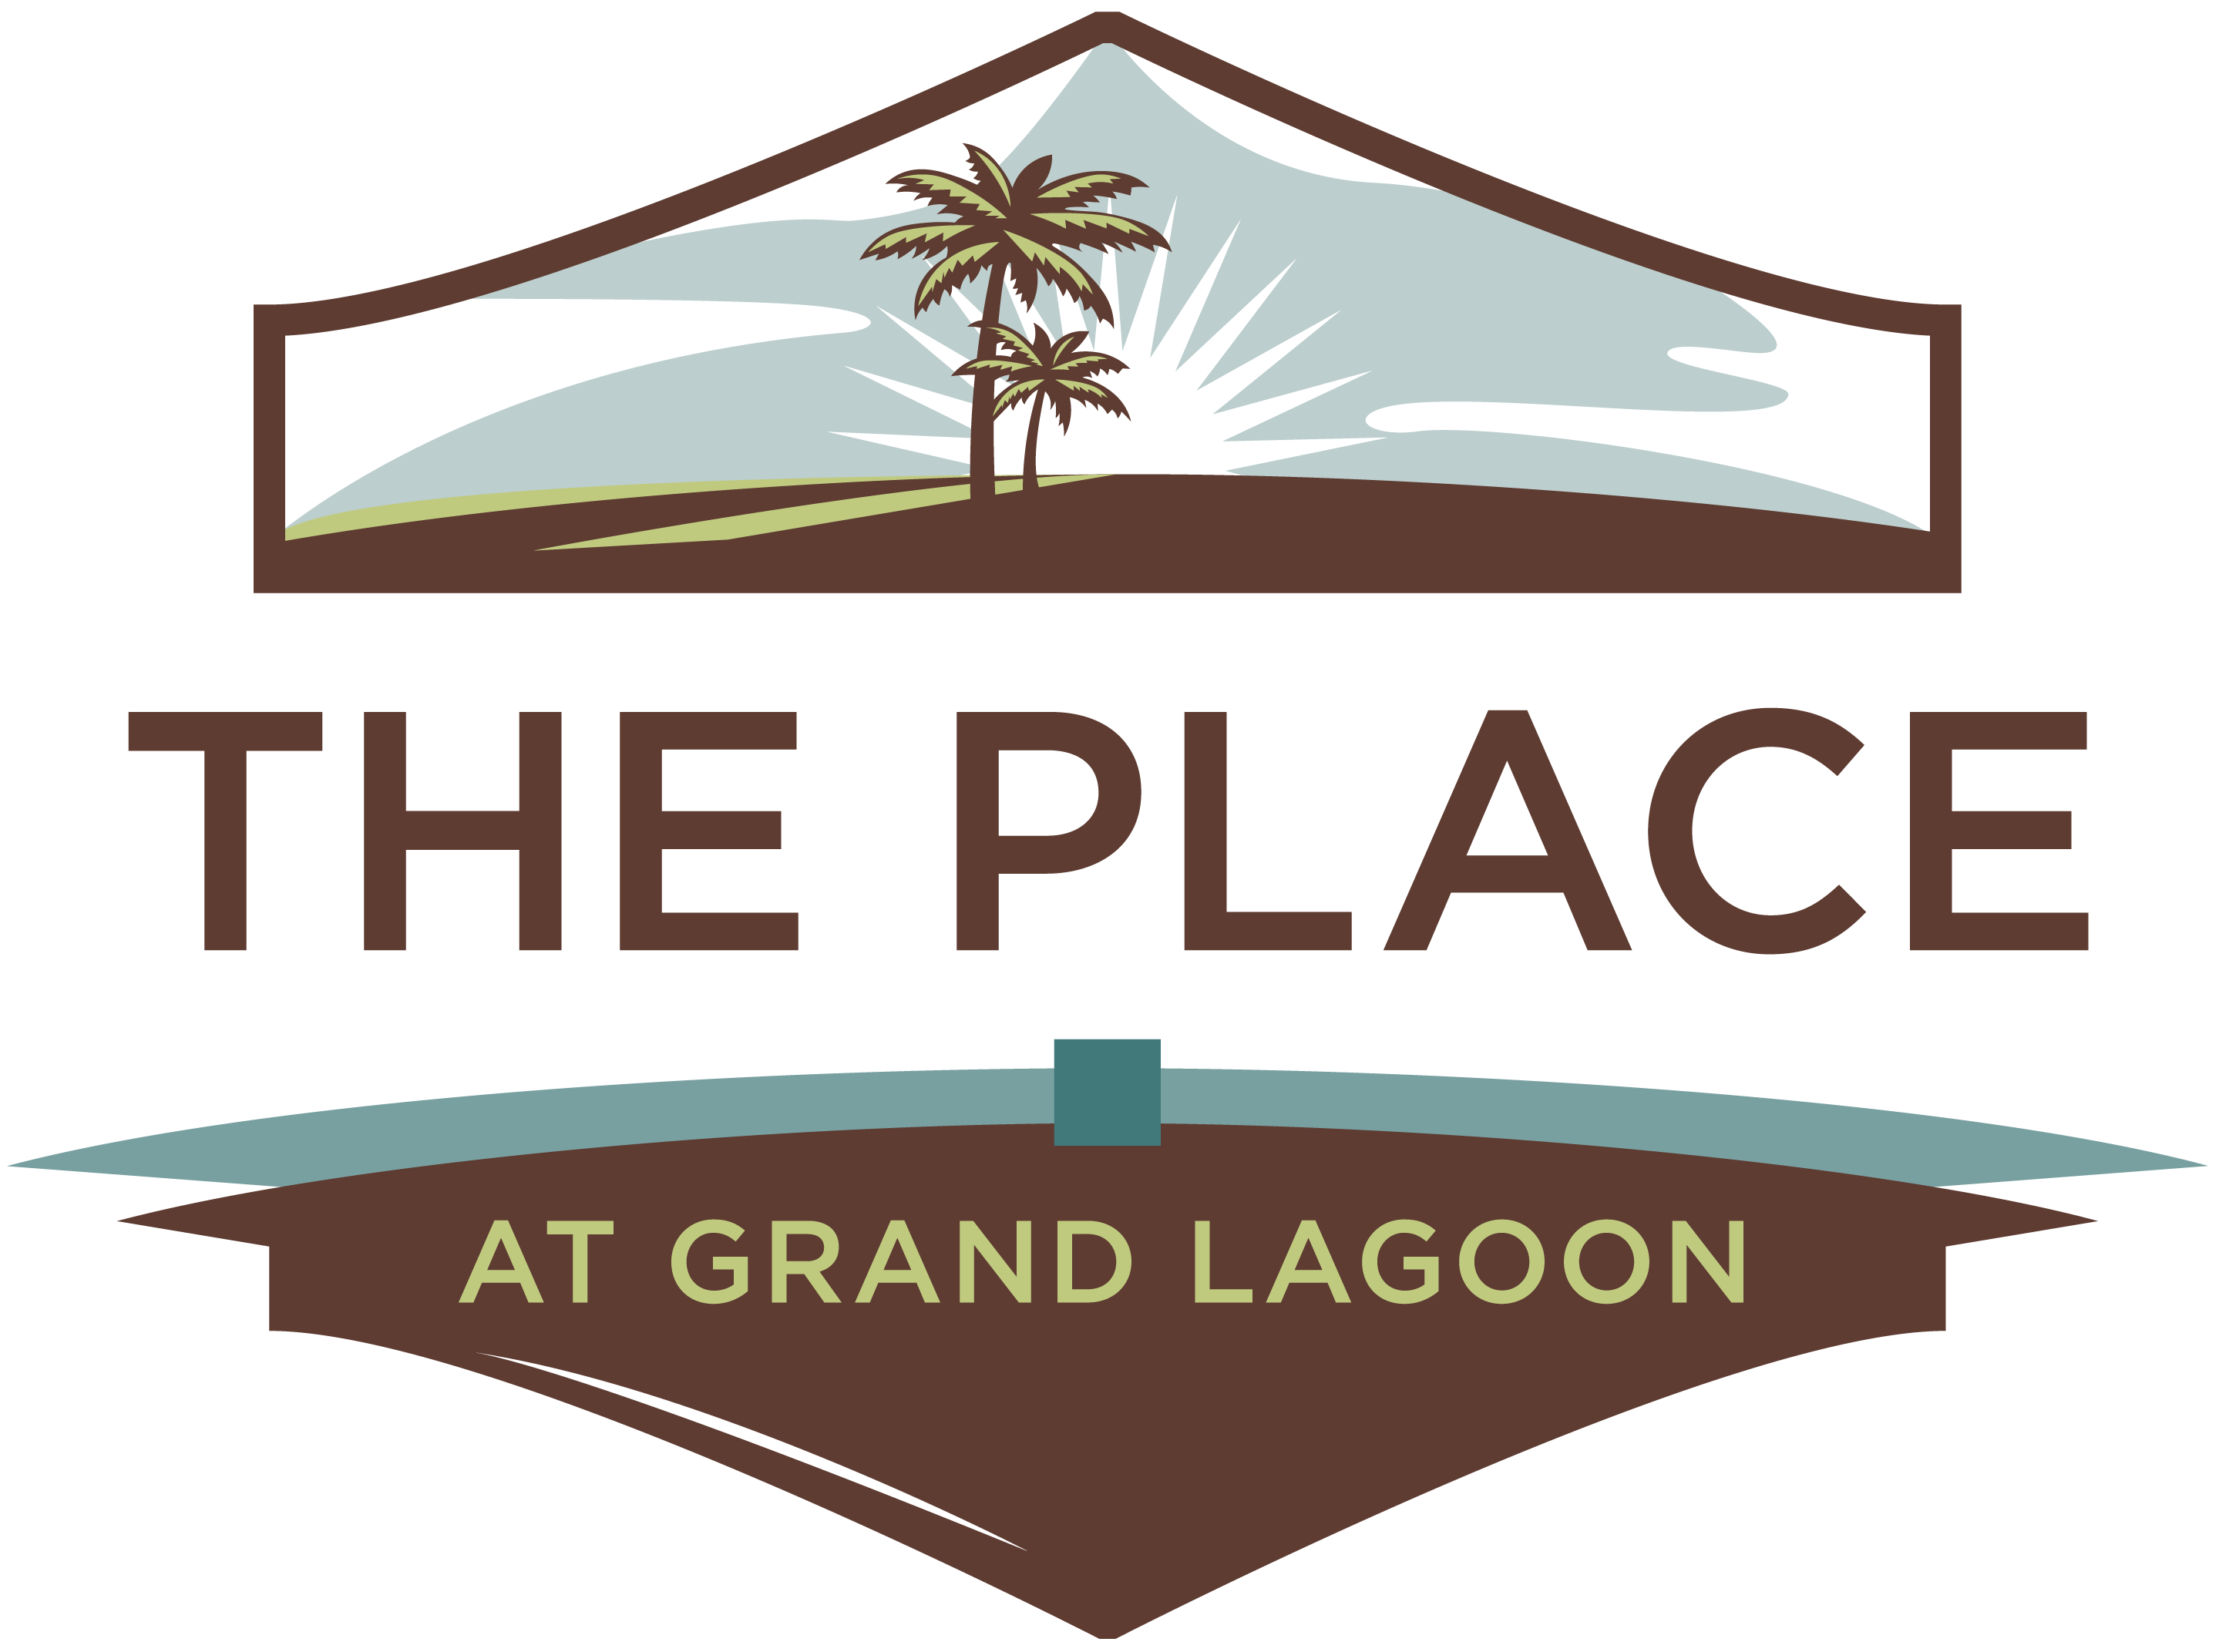 The Place at Grand Lagoon Logo